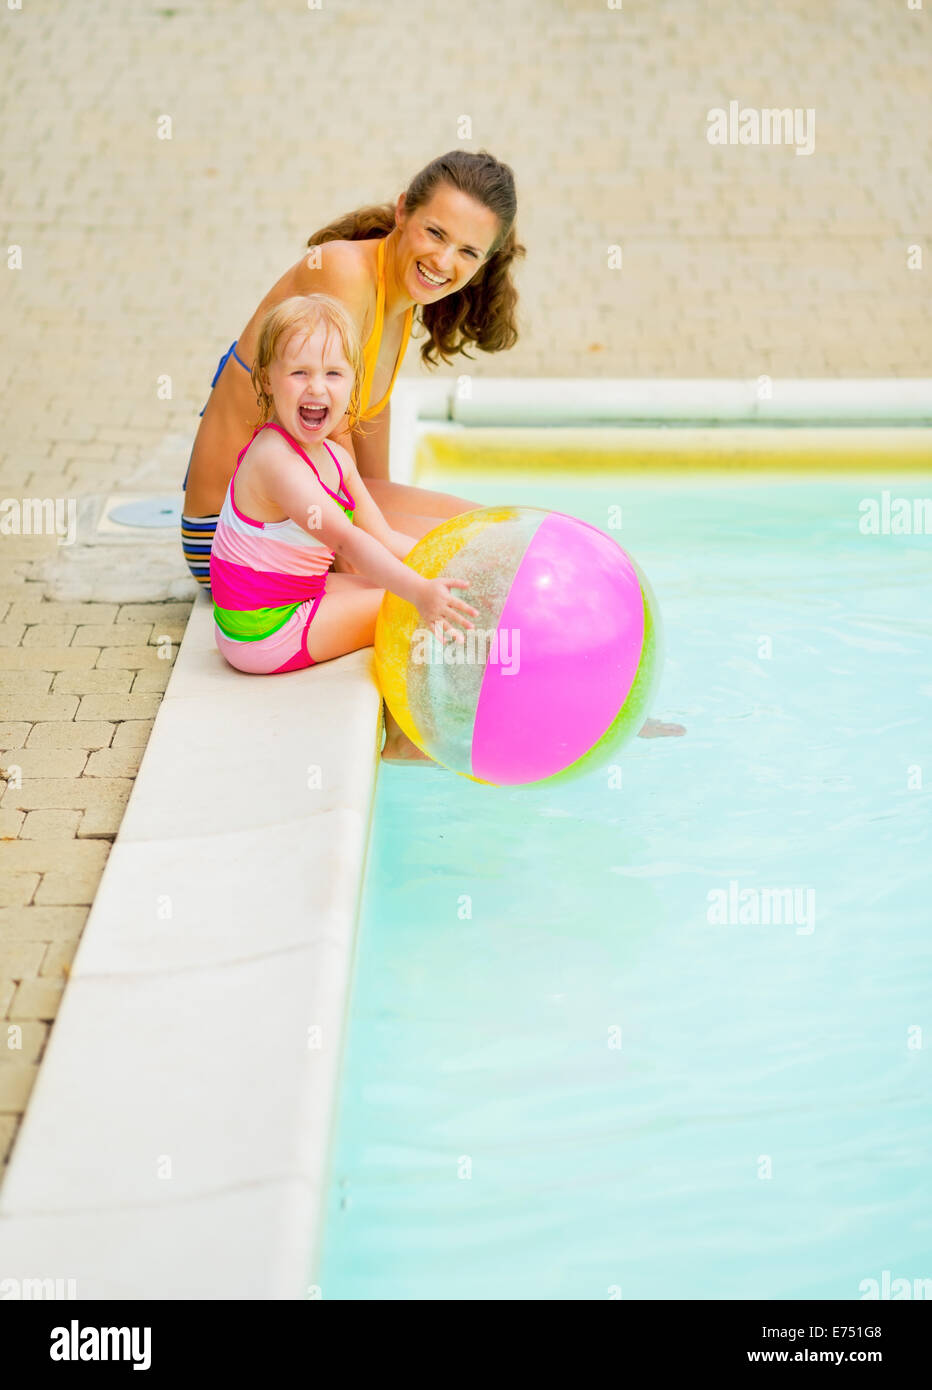 Happy Mother And Baby Girl With Ball Sitting Near Swimming Pool Stock Photo Royalty Free Image